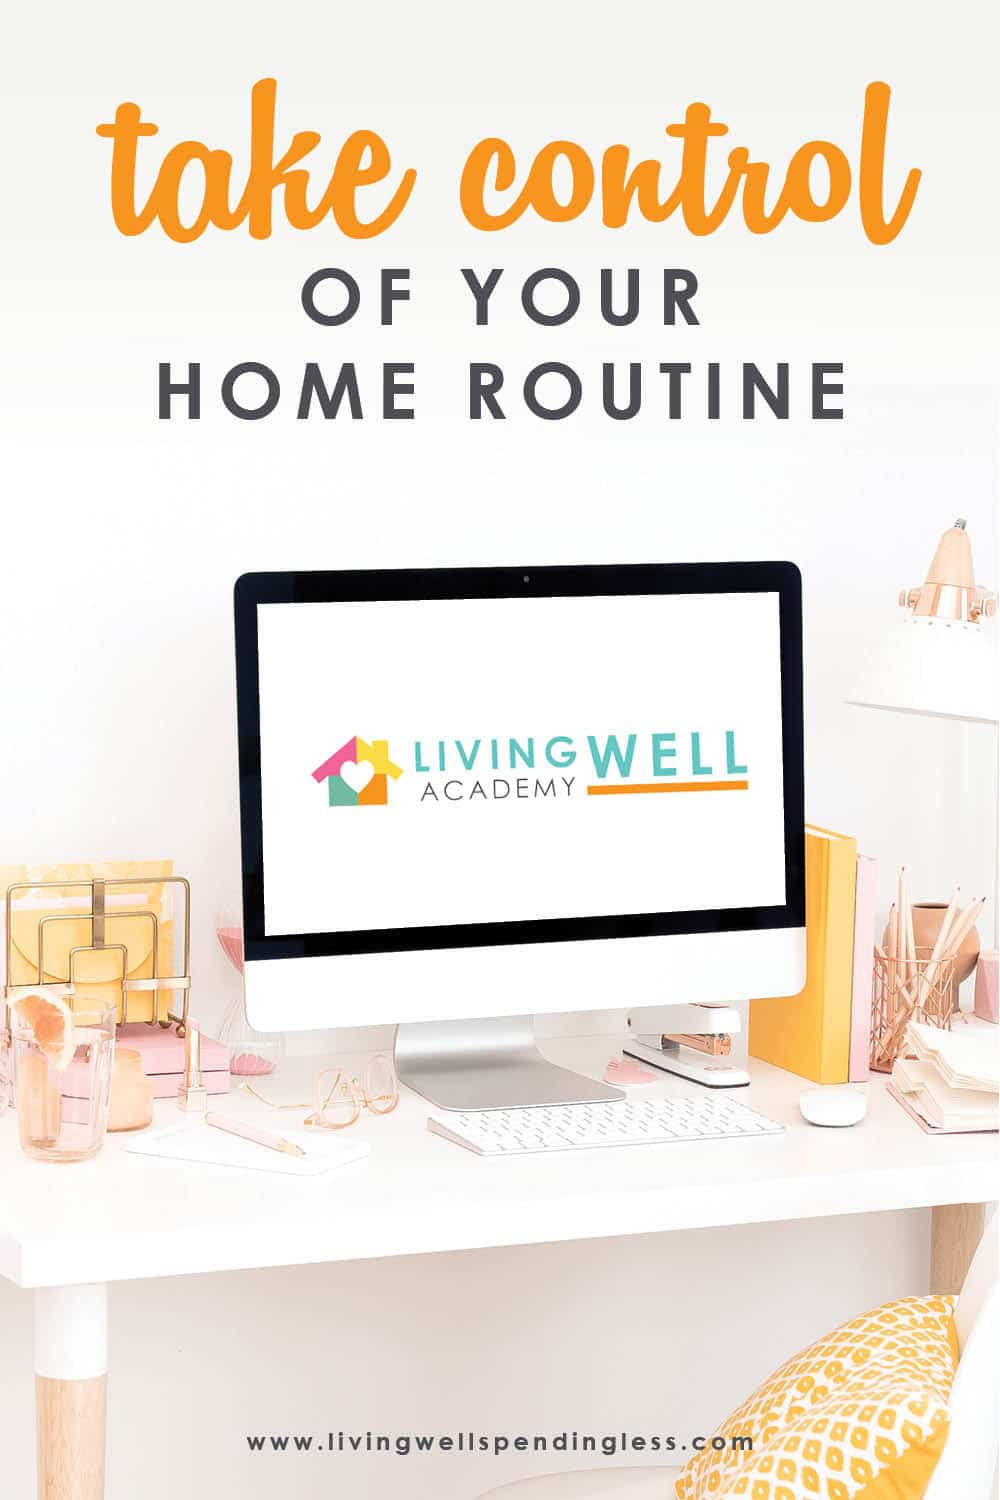 Want to Take Control of Your Home Routine? Don't Miss This! | Living Well Academy The world is a little crazy right now, and with all the stress and uncertainty going around, something to focus on to help you in all areas of life might be exactly what you need. Living Well Academy is a life management course created explicitly to help you feel productive and confident in four key areas: habits and routine, simplifying mealtime, keeping tidy, and mastering money. After this course, you will feel ready to tackle whatever craziness comes your way! Don't miss this first launch that we'll be hosting live! #lifegoals #mastermoney #smartmoney #foodmadesimple #lifemanagement #lifecourse #empowered